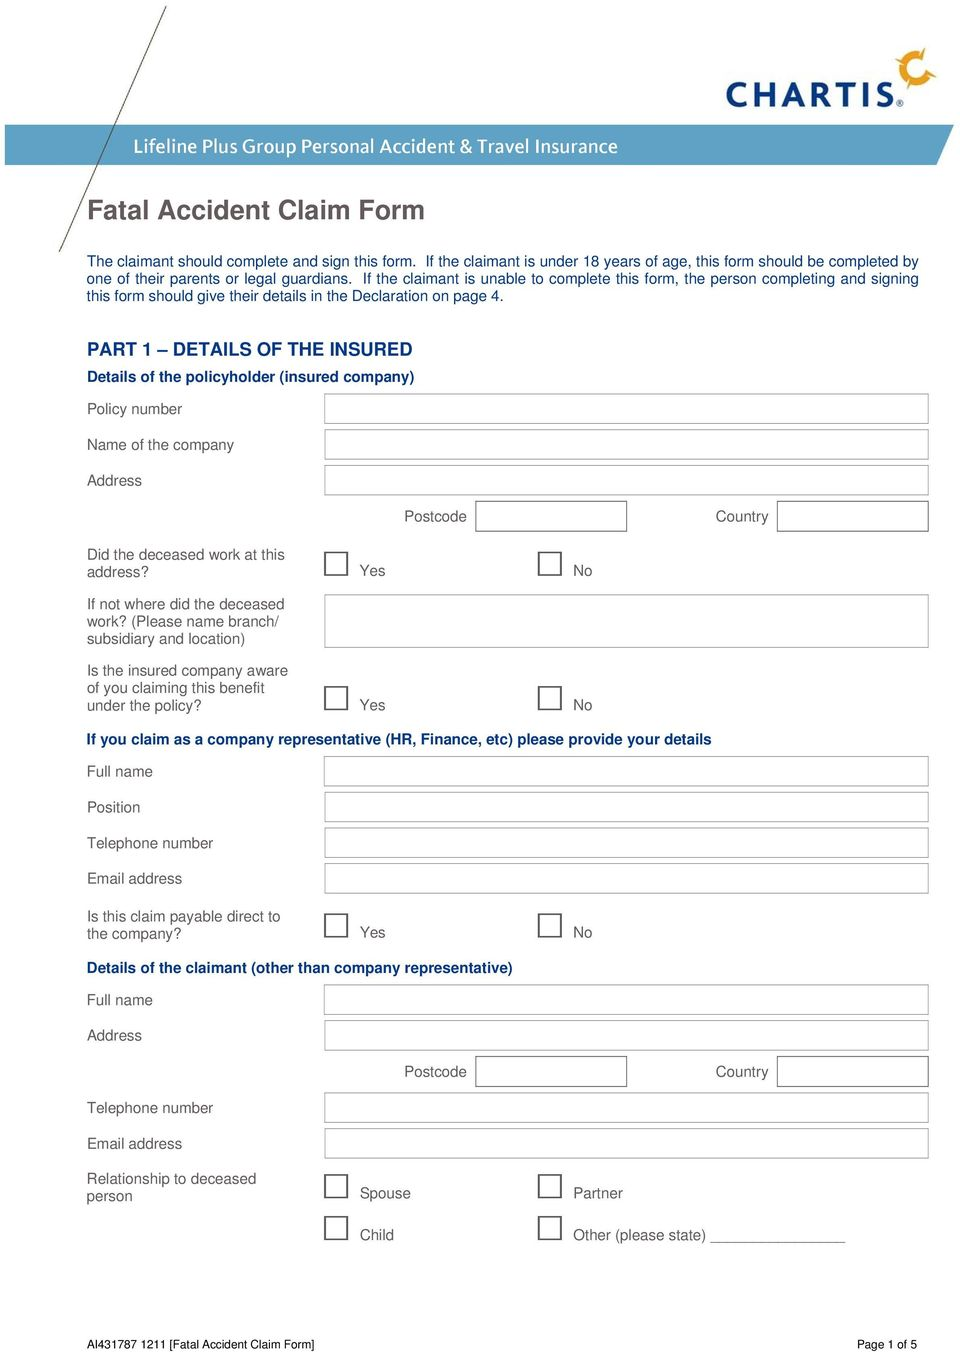 If the claimant is unable to complete this form, the person completing and signing this form should give their details in the Declaration on page 4.